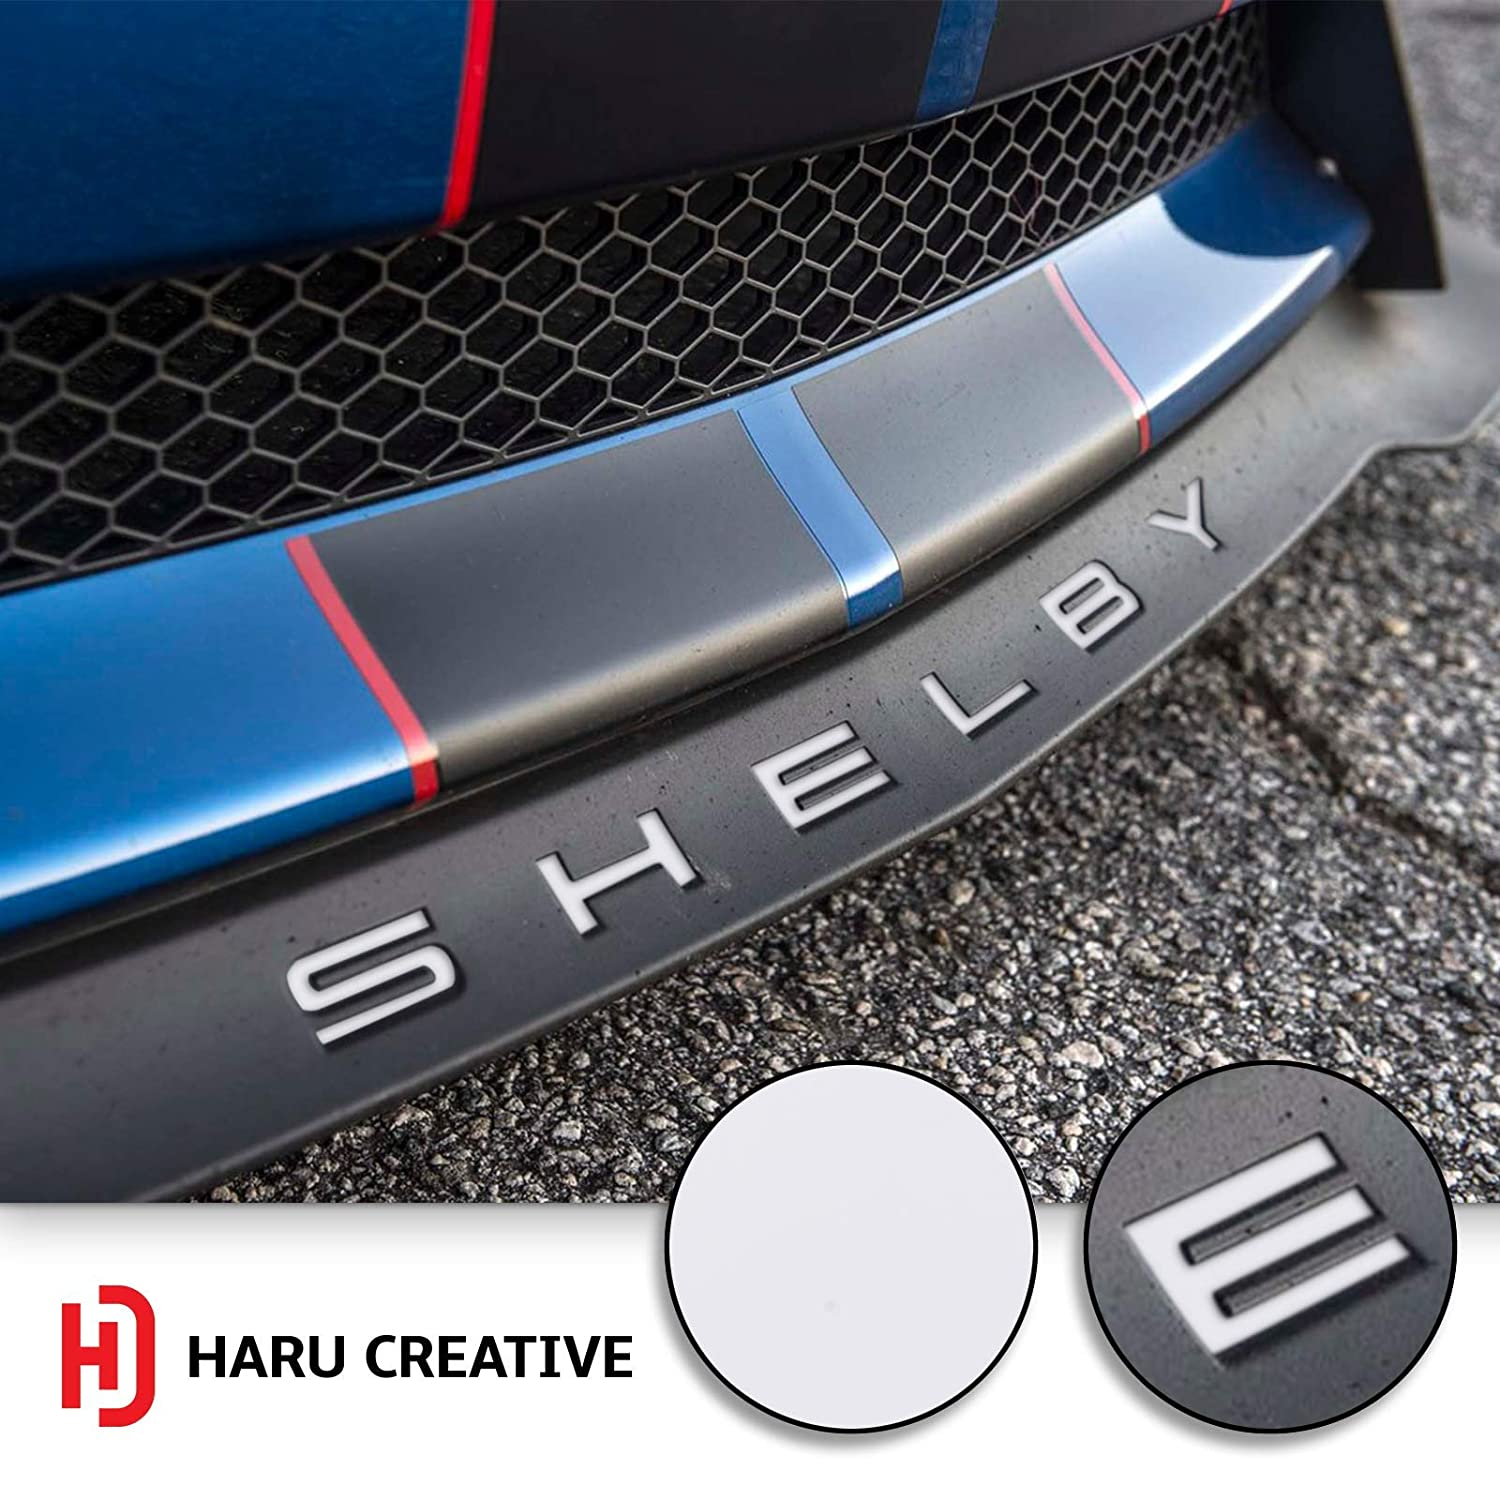 Matte Gunmetal Loyo Front Splitter Lip Hood Grille Letter Insert Overlay Vinyl Decal Sticker Compatible with and Fits Mustang Shelby GT350 2015-2018 Haru Creative